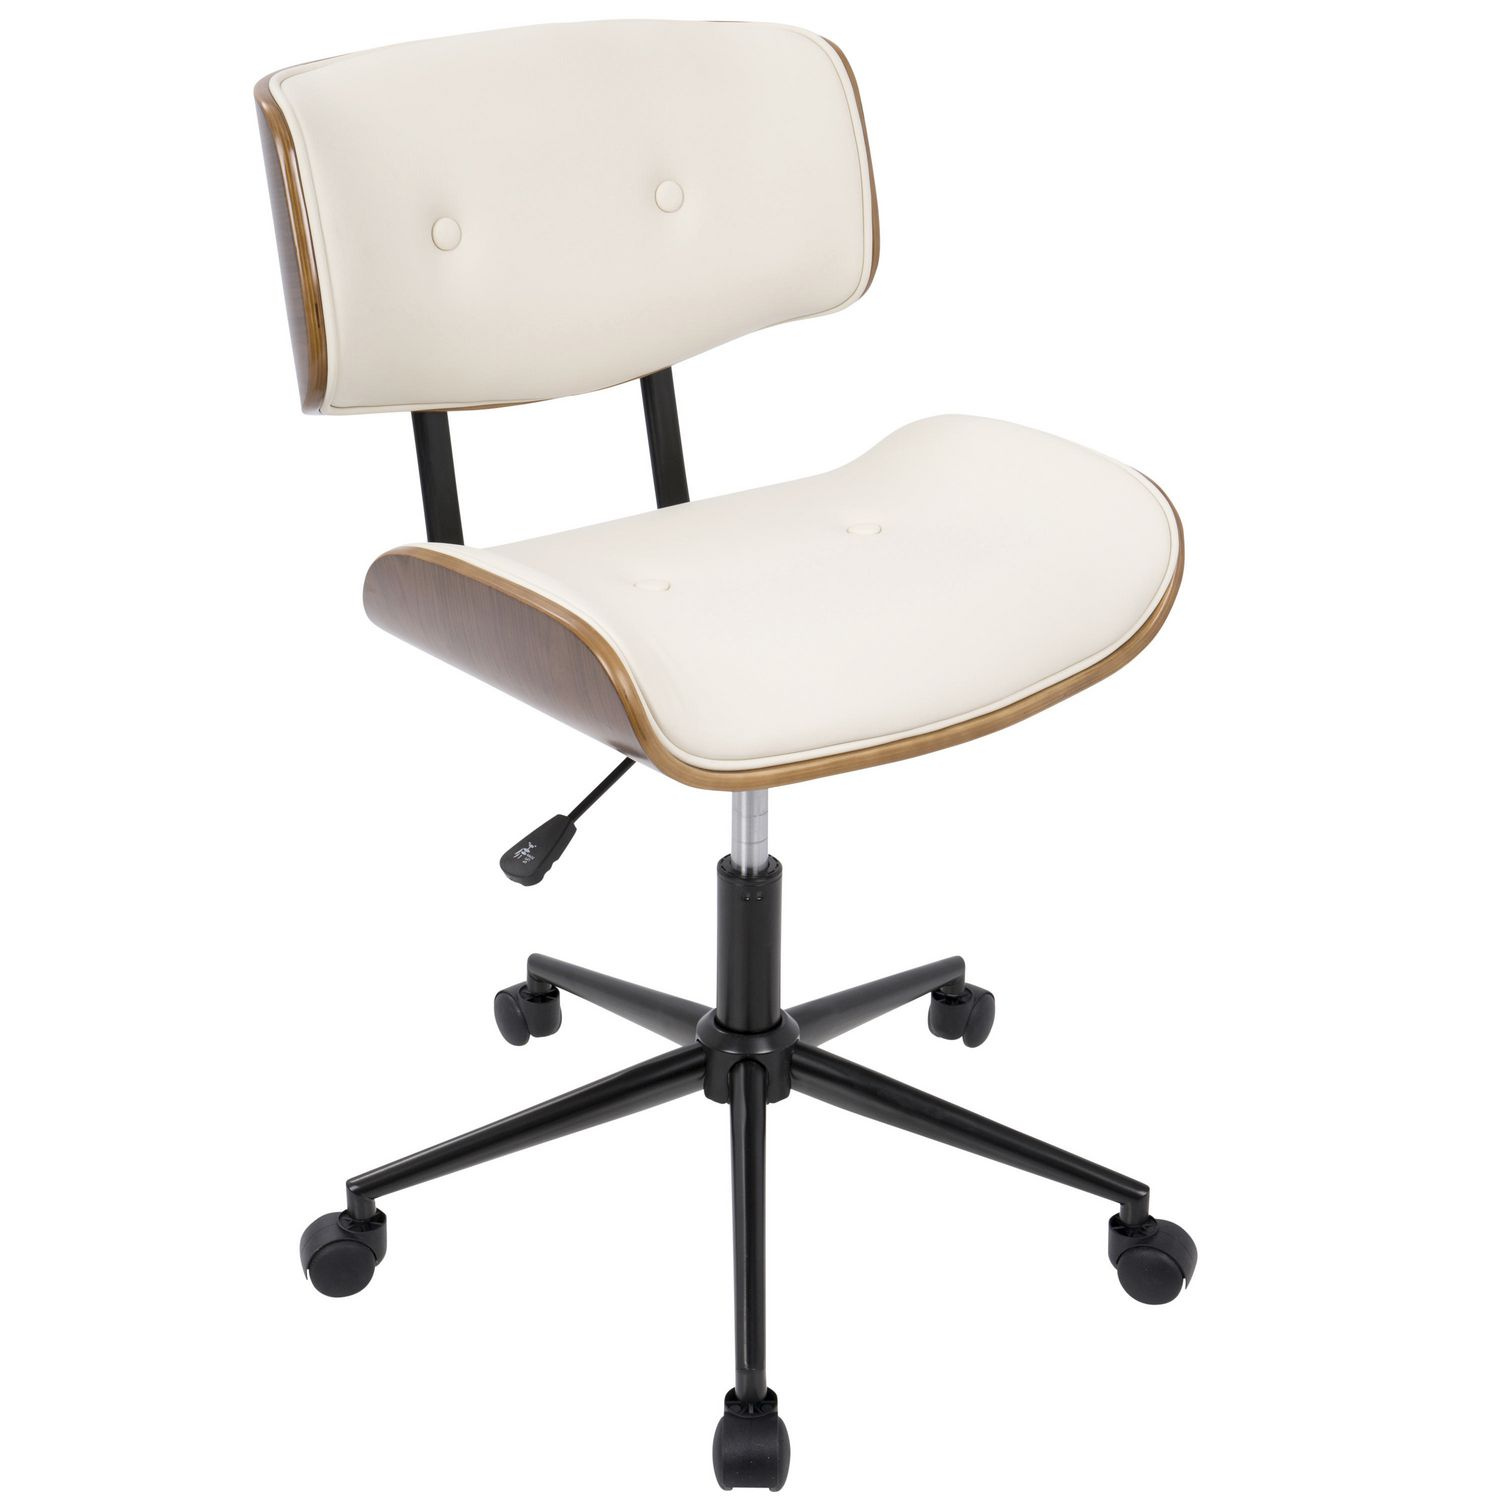 Lumisource Mid Century Modern Office Chair Walmart Canada